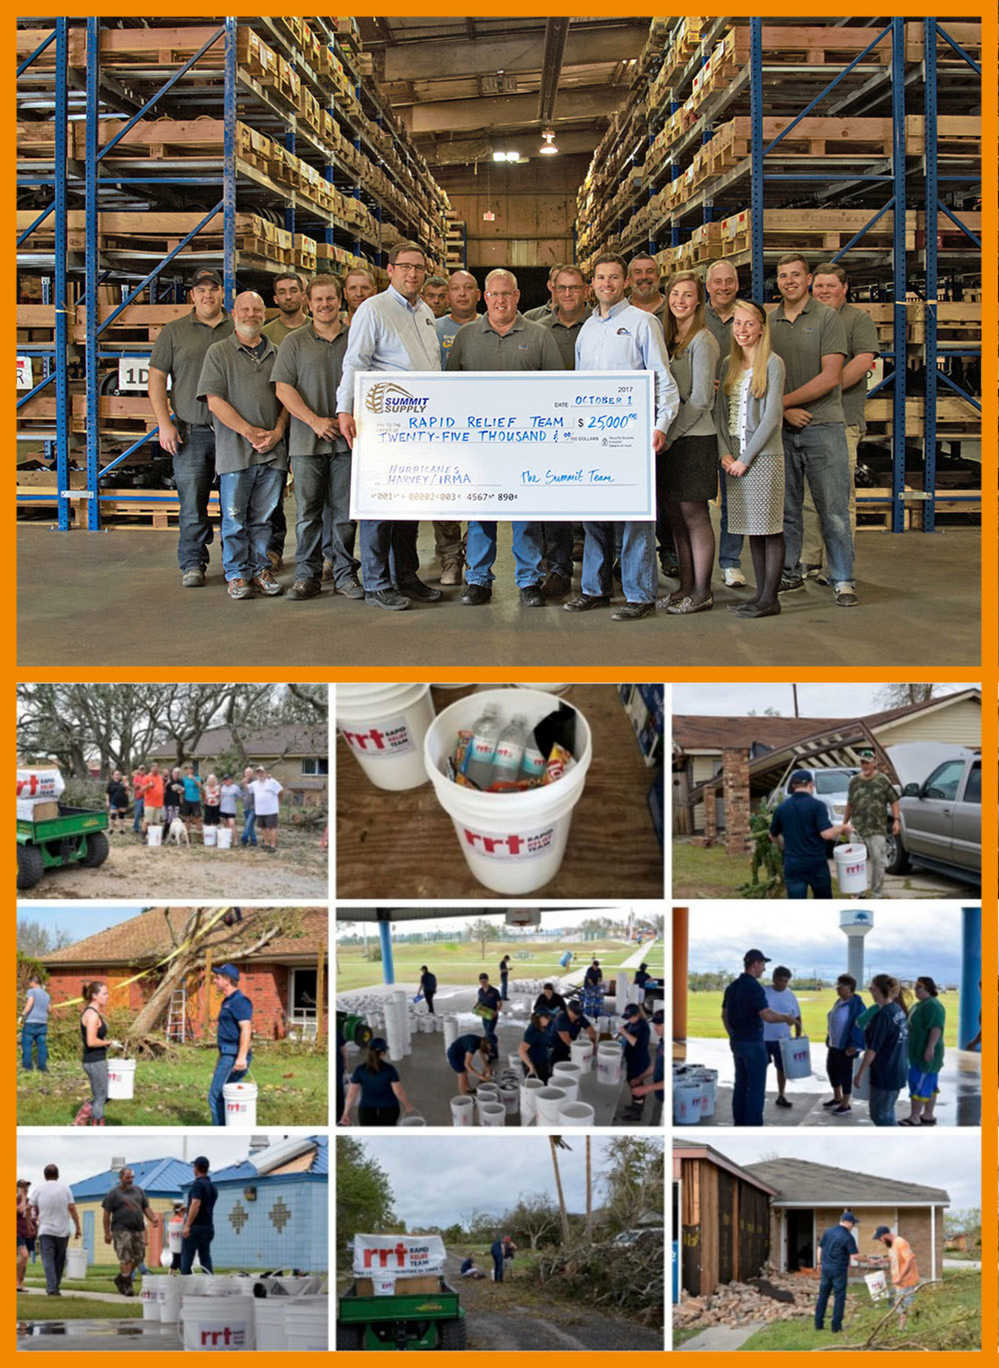 Summit Supply believes whole-heartedly in giving back, and we are proud to support the efforts of this amazing group of volunteers during the past month's hurricanes in both Texas and Florida,